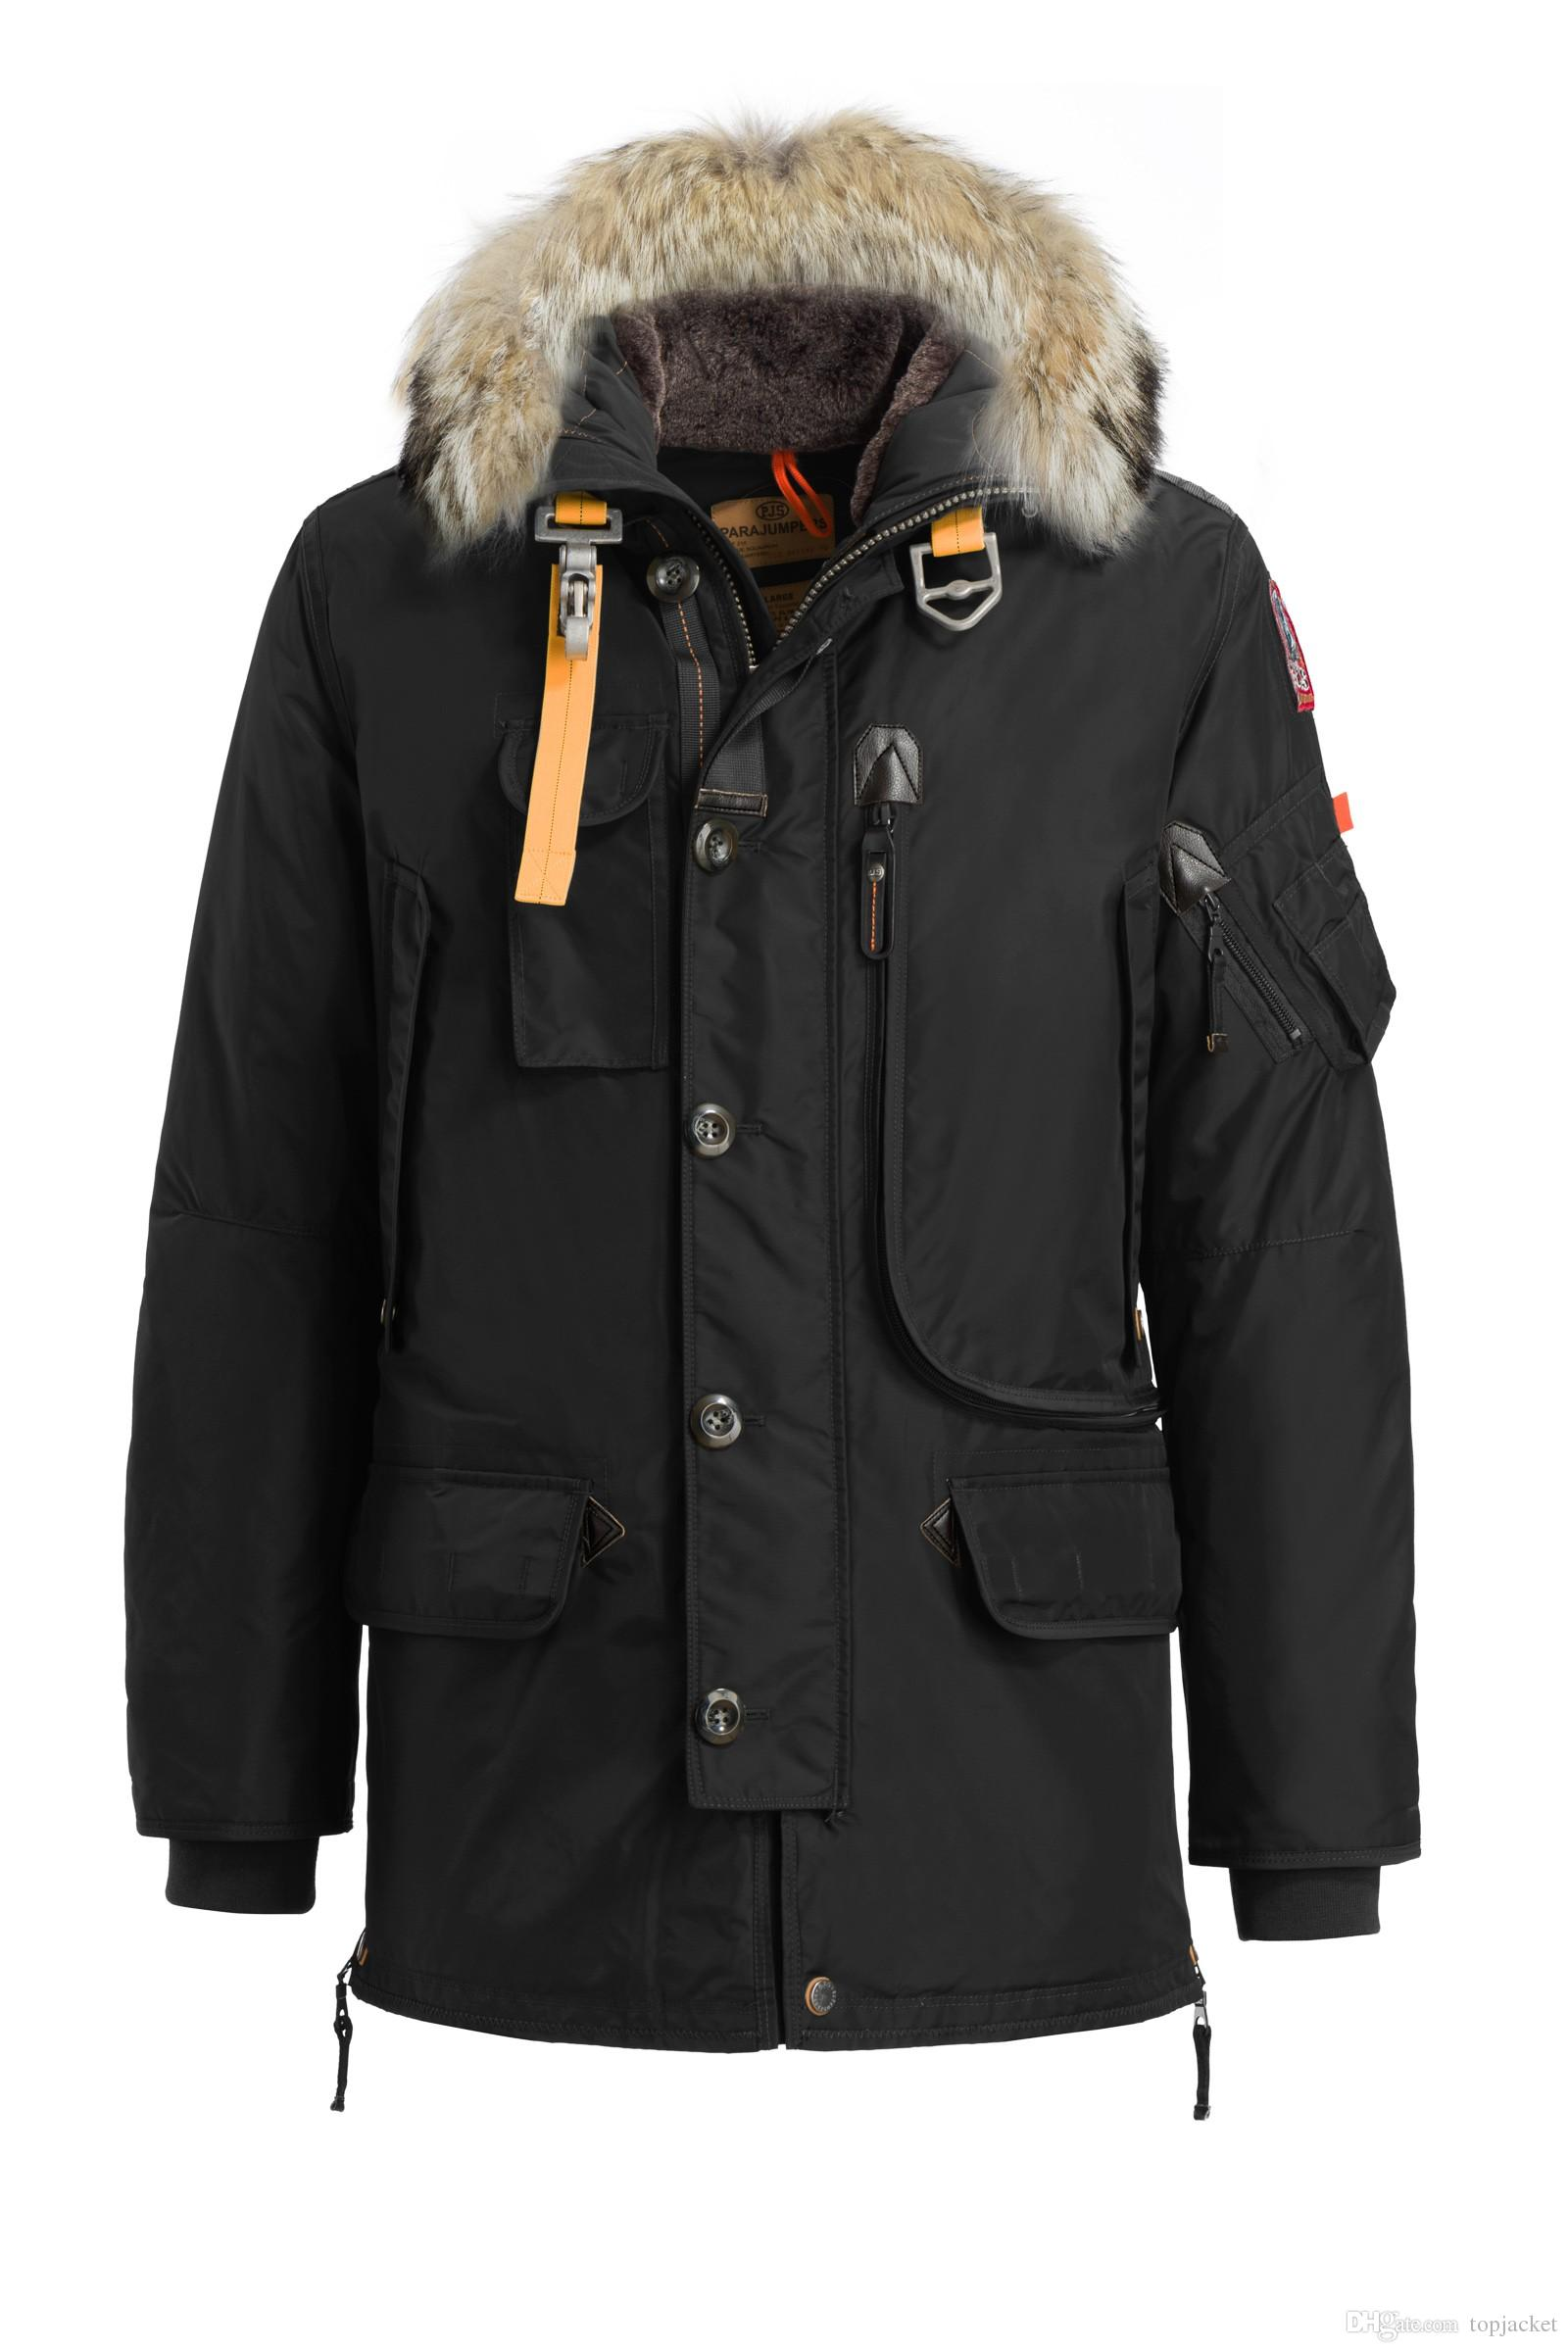 parajumper coat sale